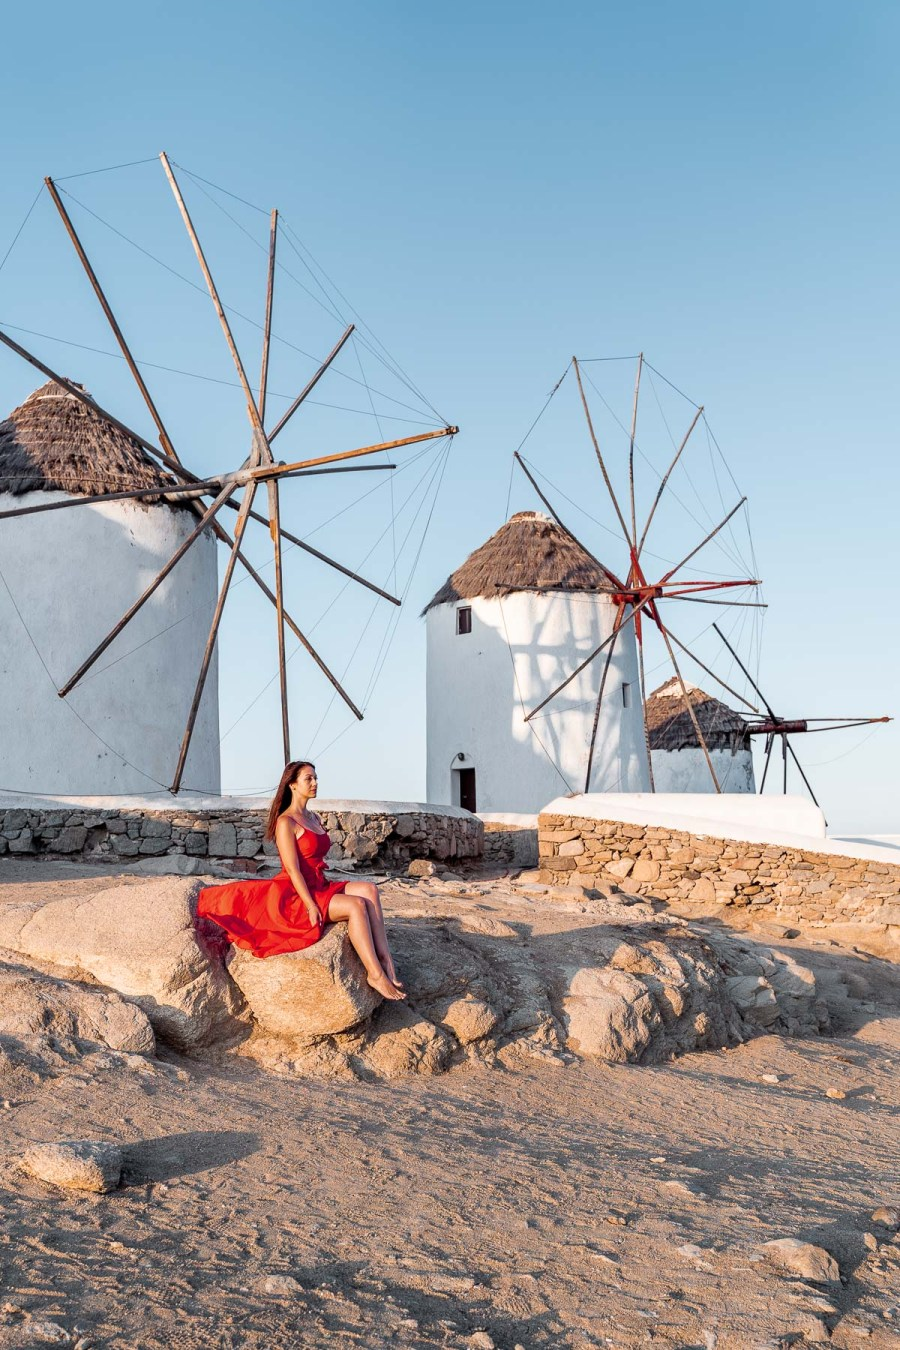 Girl in a red dress sitting on a rock in front of the windmills in Mykonos